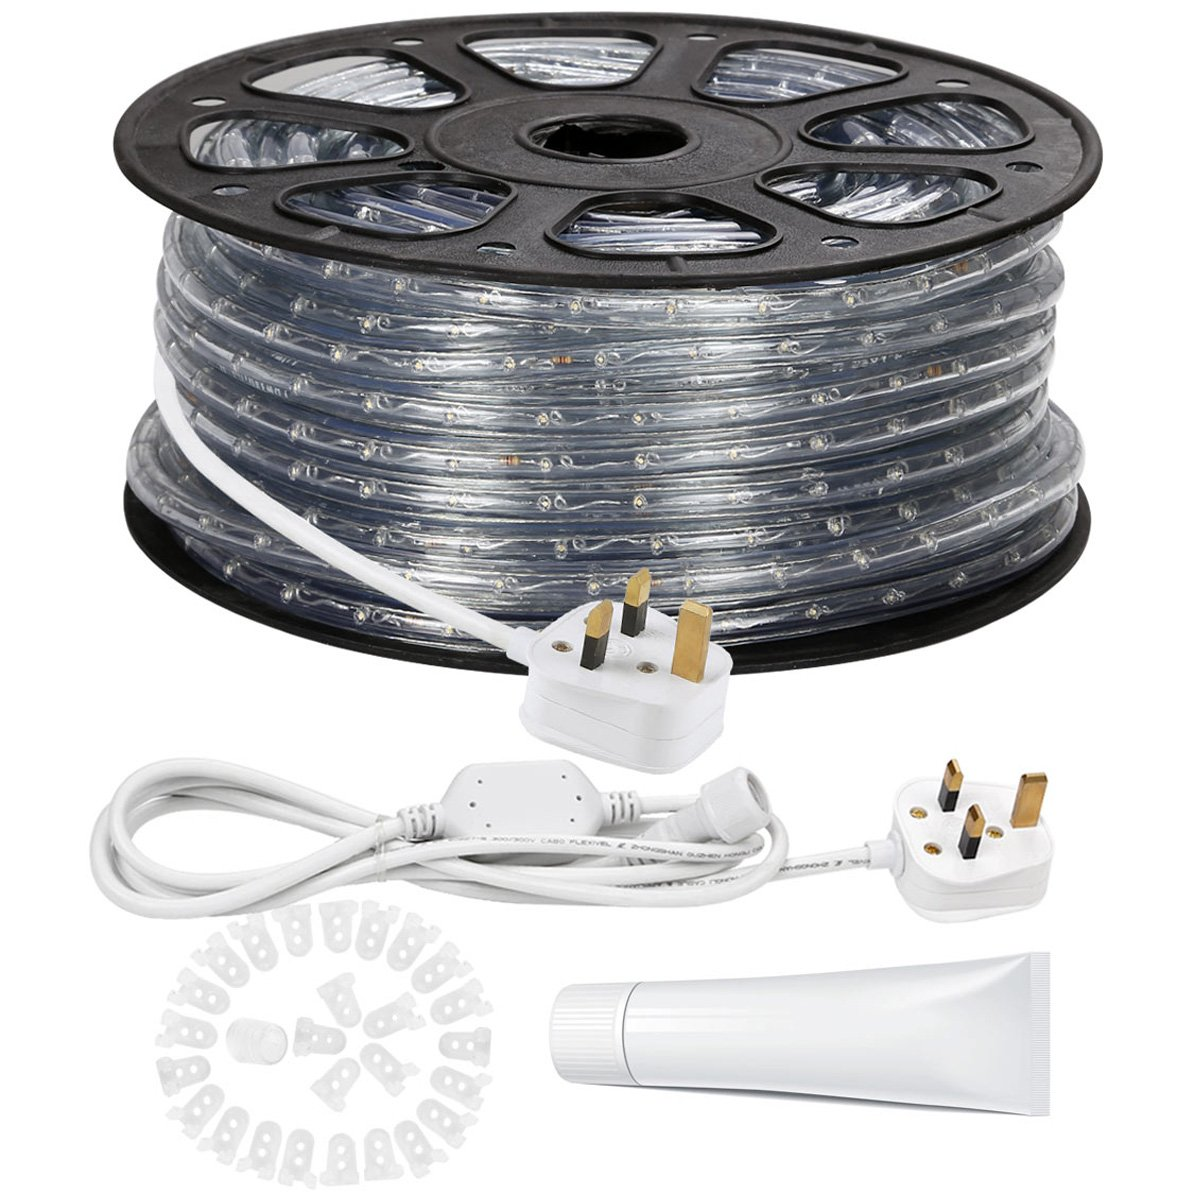 Le 46m 220 240v ac led rope lights kit 3000k warm white waterproof le 46m 220 240v ac led rope lights kit 3000k warm white waterproof ip65 accessories included led crystal clear pvc tubing rope customizable length mozeypictures Gallery